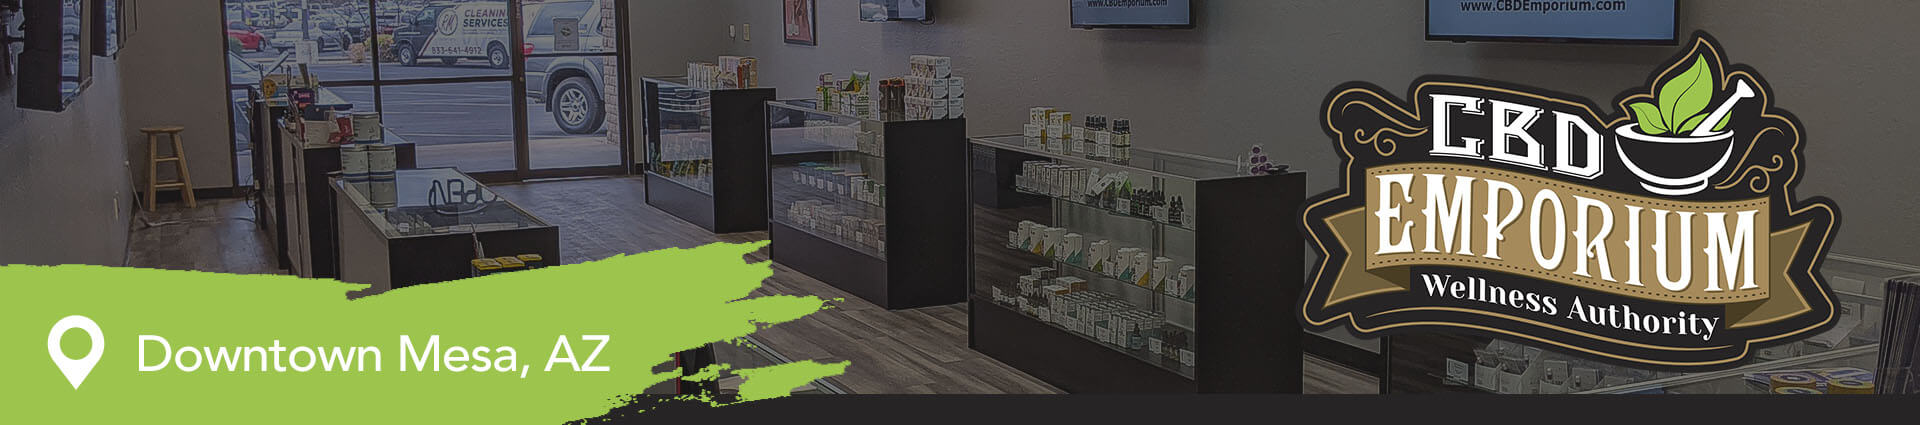 Inside our CBD Store in Mesa